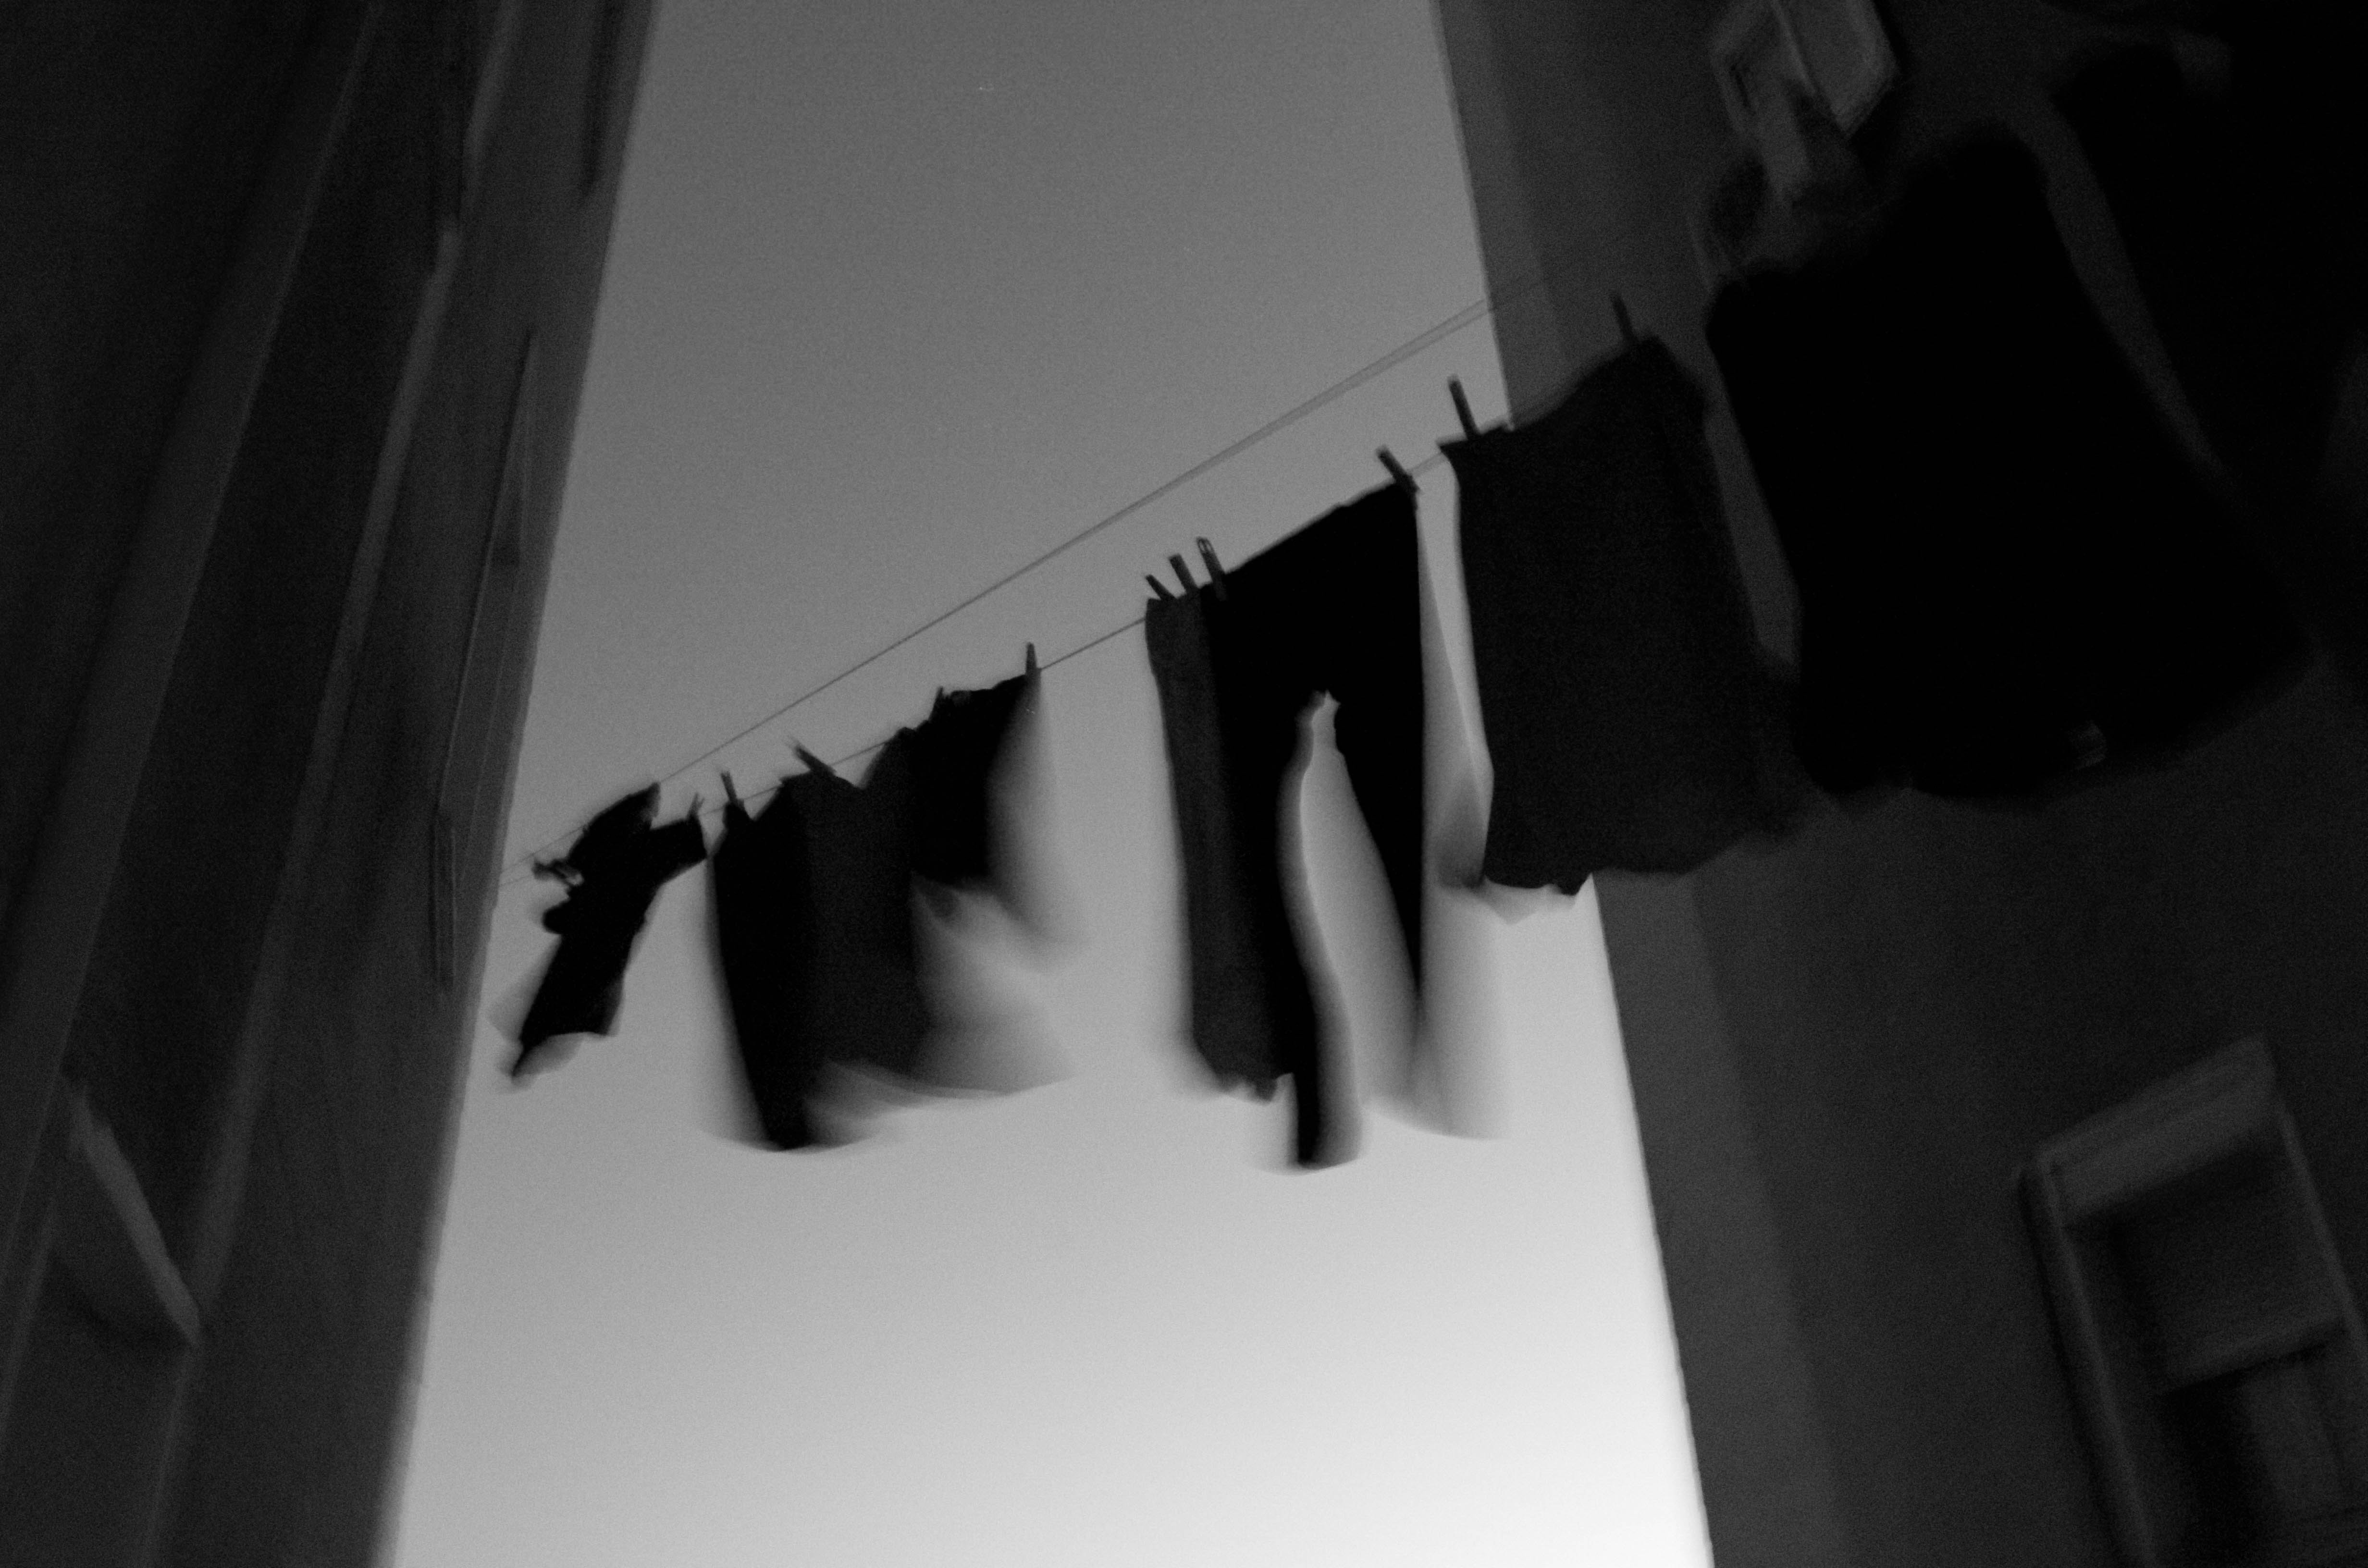 grayscale clothes hanging on cable